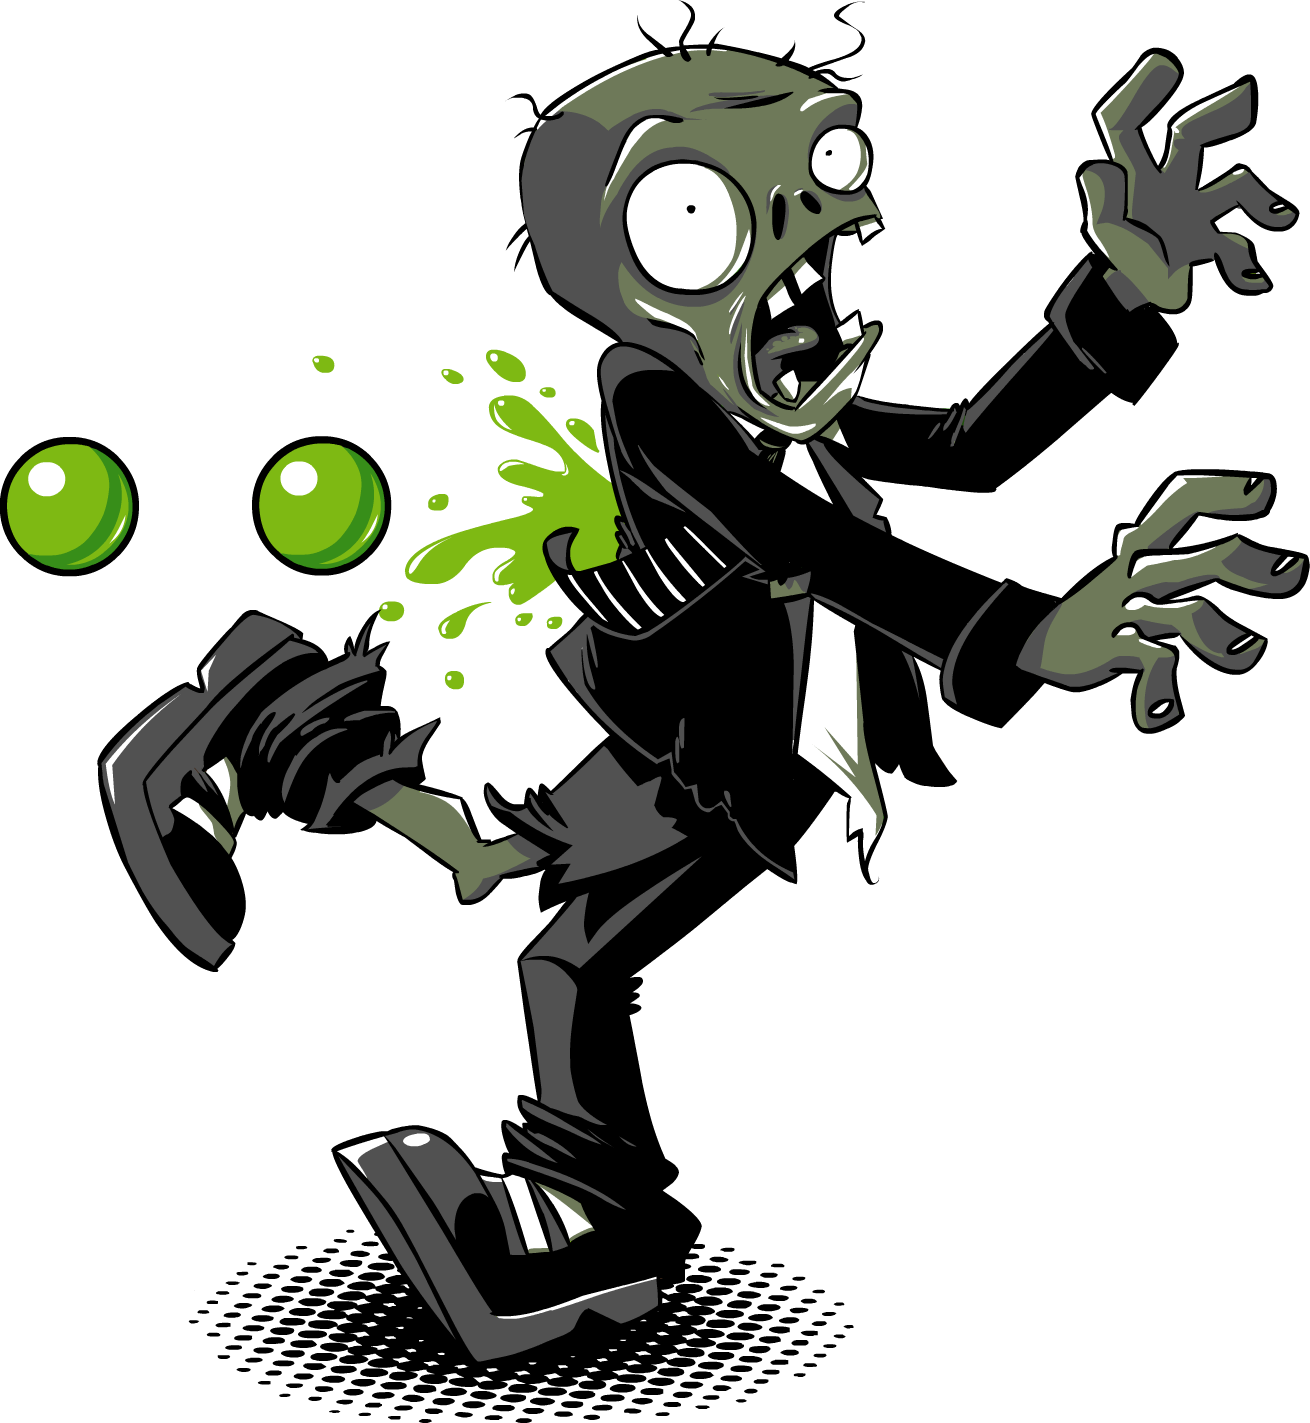 Zombie clipart plant vs zombie. Plants zombies rich werner